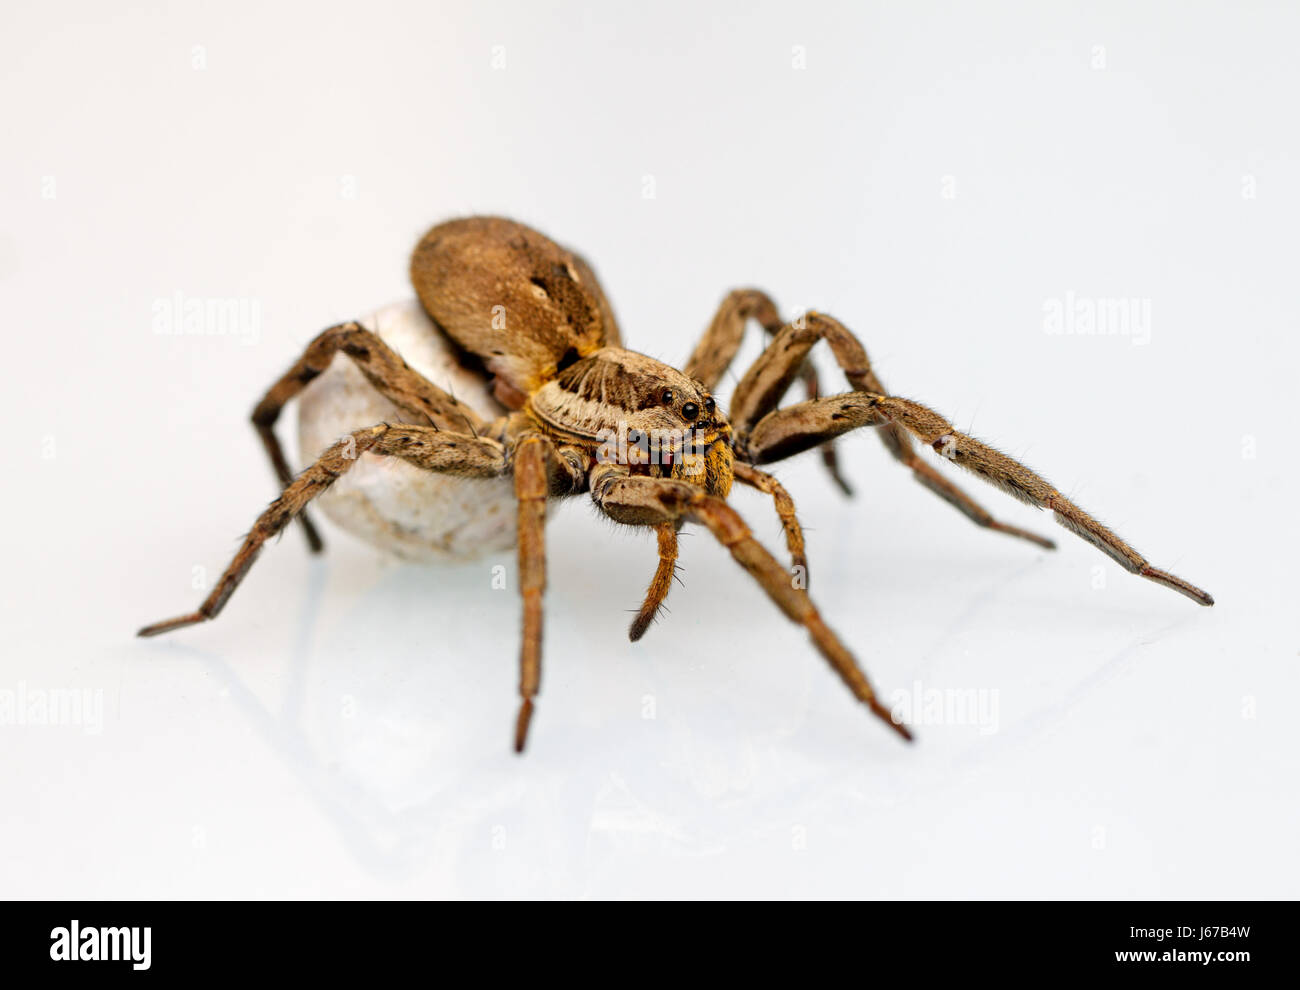 Photo of a giant and dangerous  spider - Stock Image